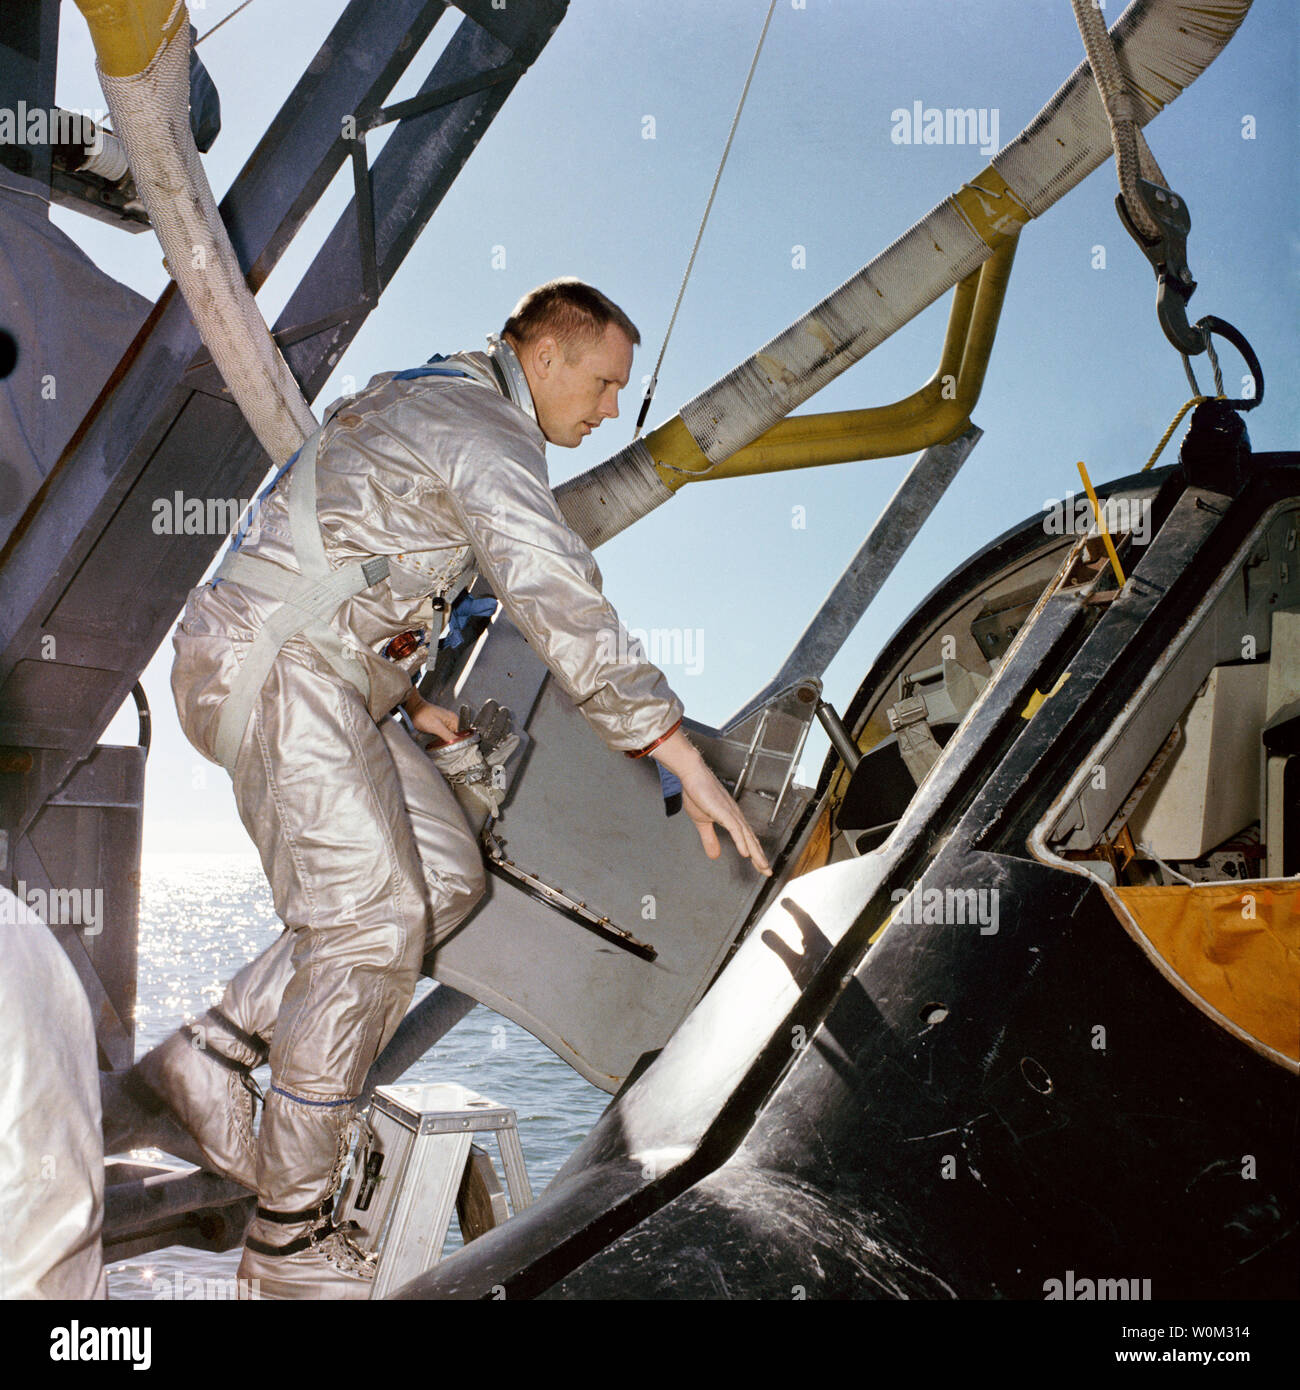 NASA astronaut Neil Armstrong, prime crew Command pilot on Gemini 8, climbs into a full-scale model of the Gemini spacecraft during water egress training on the Gulf of Mexico in January 15, 1966. March 16, 2016 marks the 50th anniversary of NASA's Gemini 8 mission, the sixth manned spaceflight conducted during the United States' Project Gemini program. The primary objective of the mission, the successful docking of two spacecraft in orbit, a first in spaceflight, was a success though the crew would experience a critical in-space system failure, forcing them to abandon the mission prematurely. Stock Photo